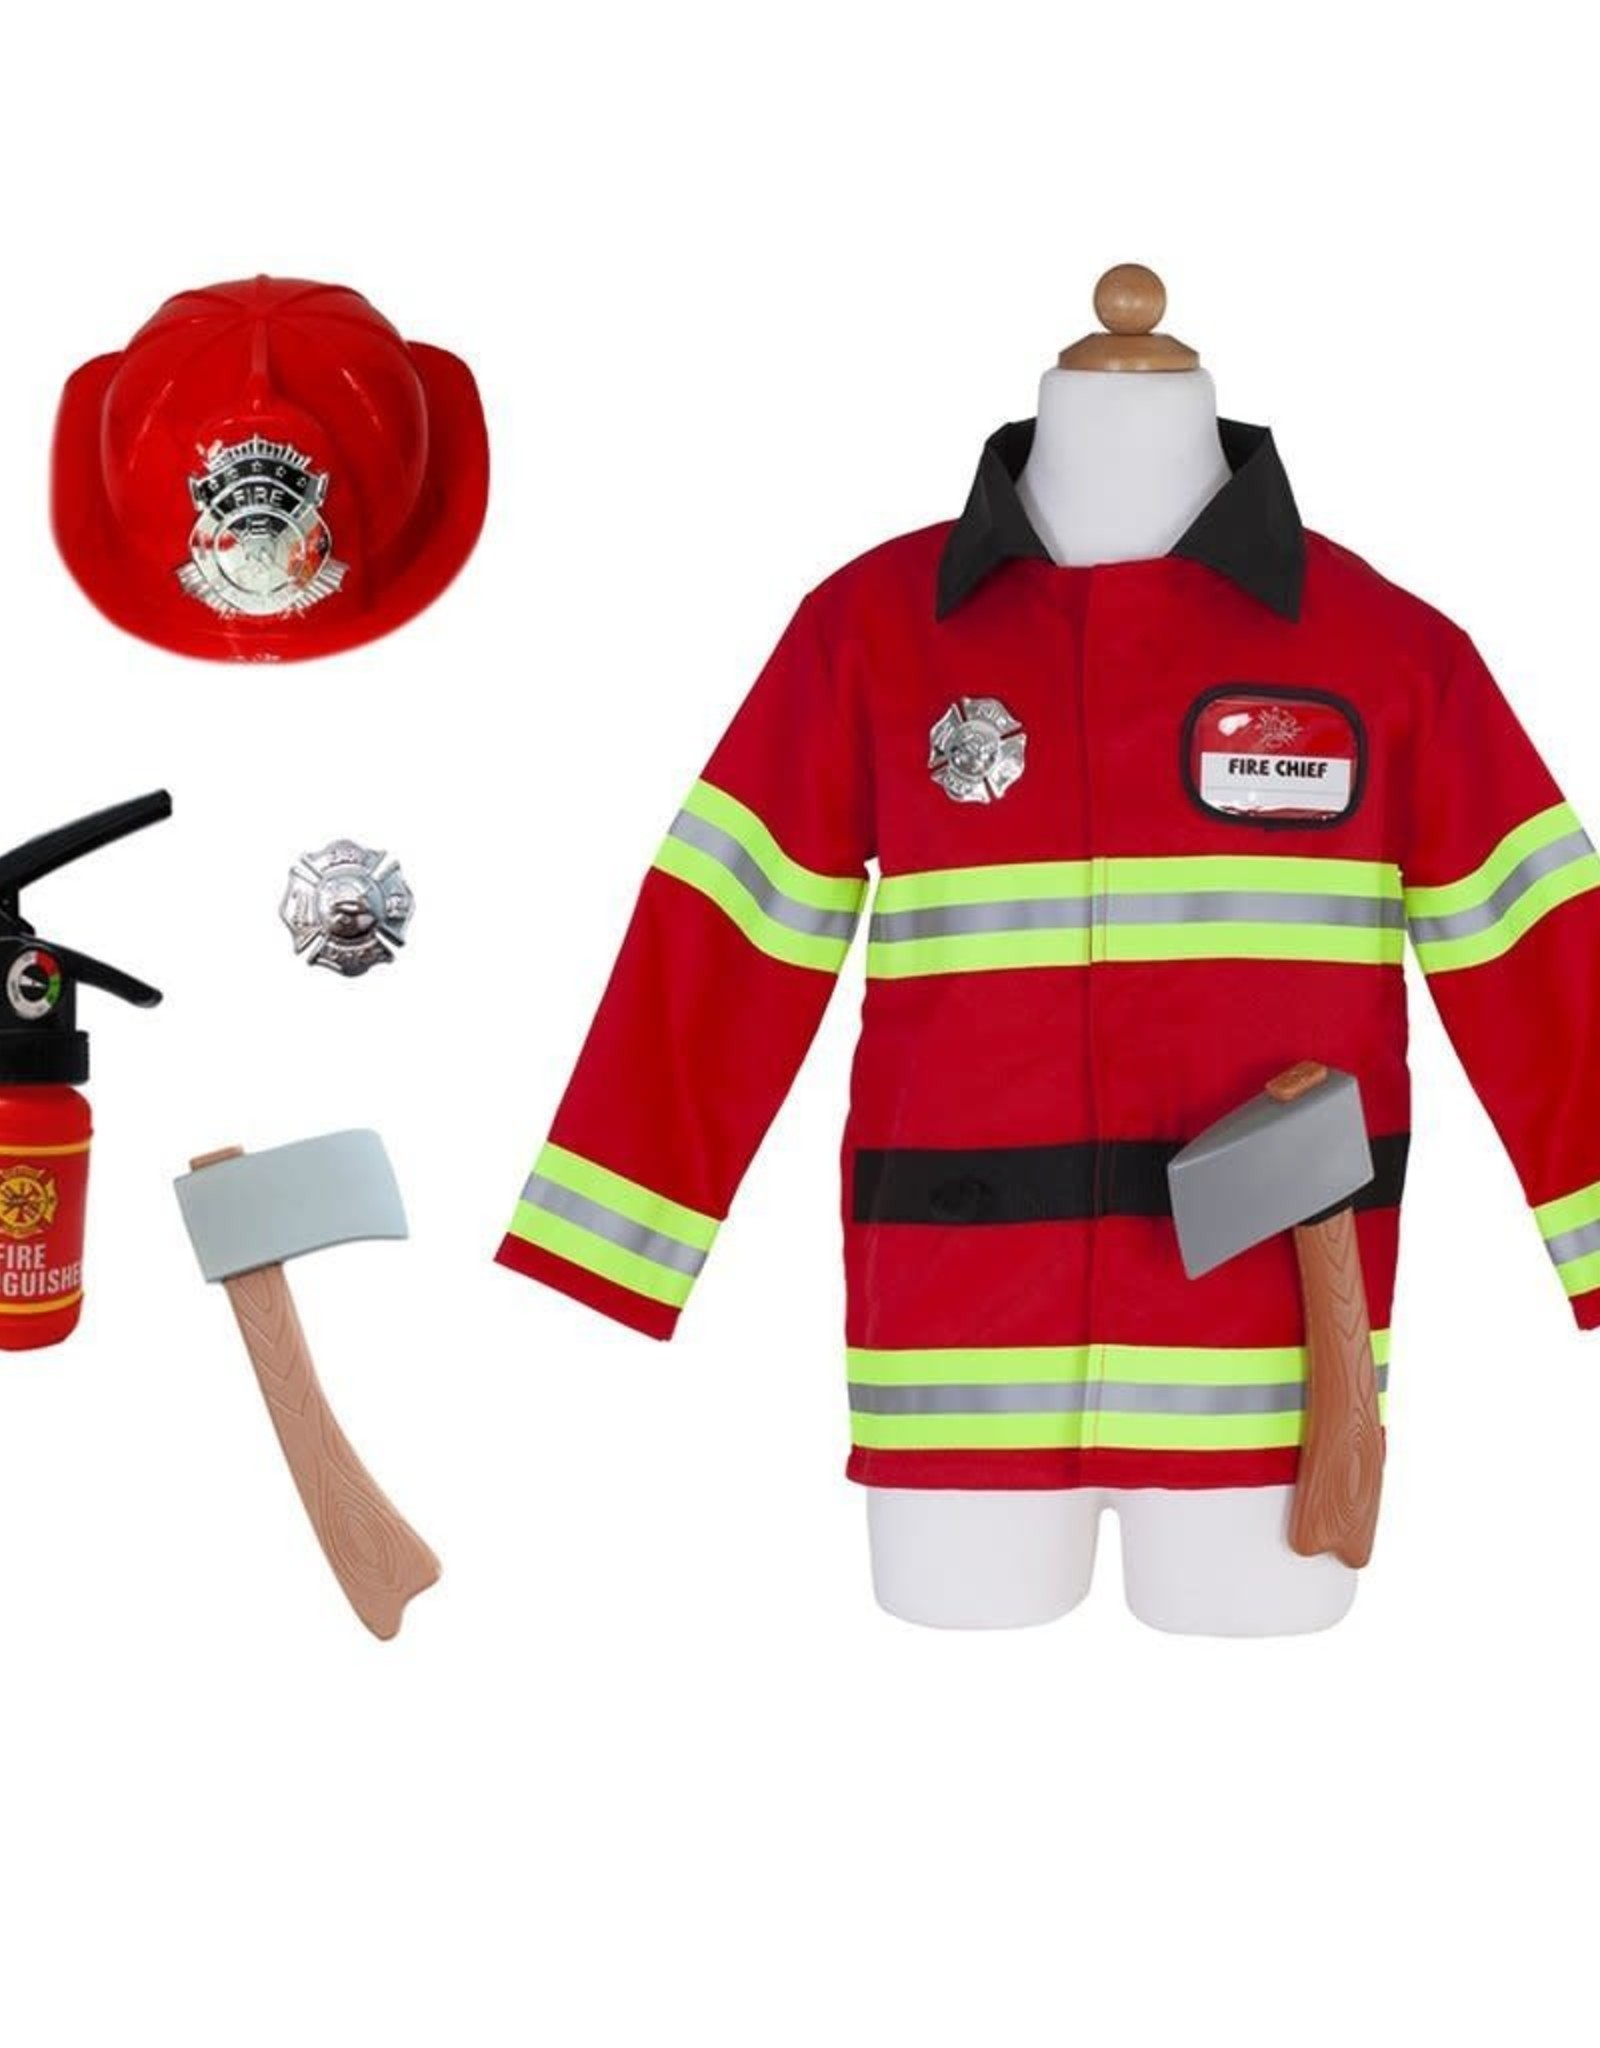 Great Pretenders Firefighter Set Includes 5 Accessories, Size 5-6